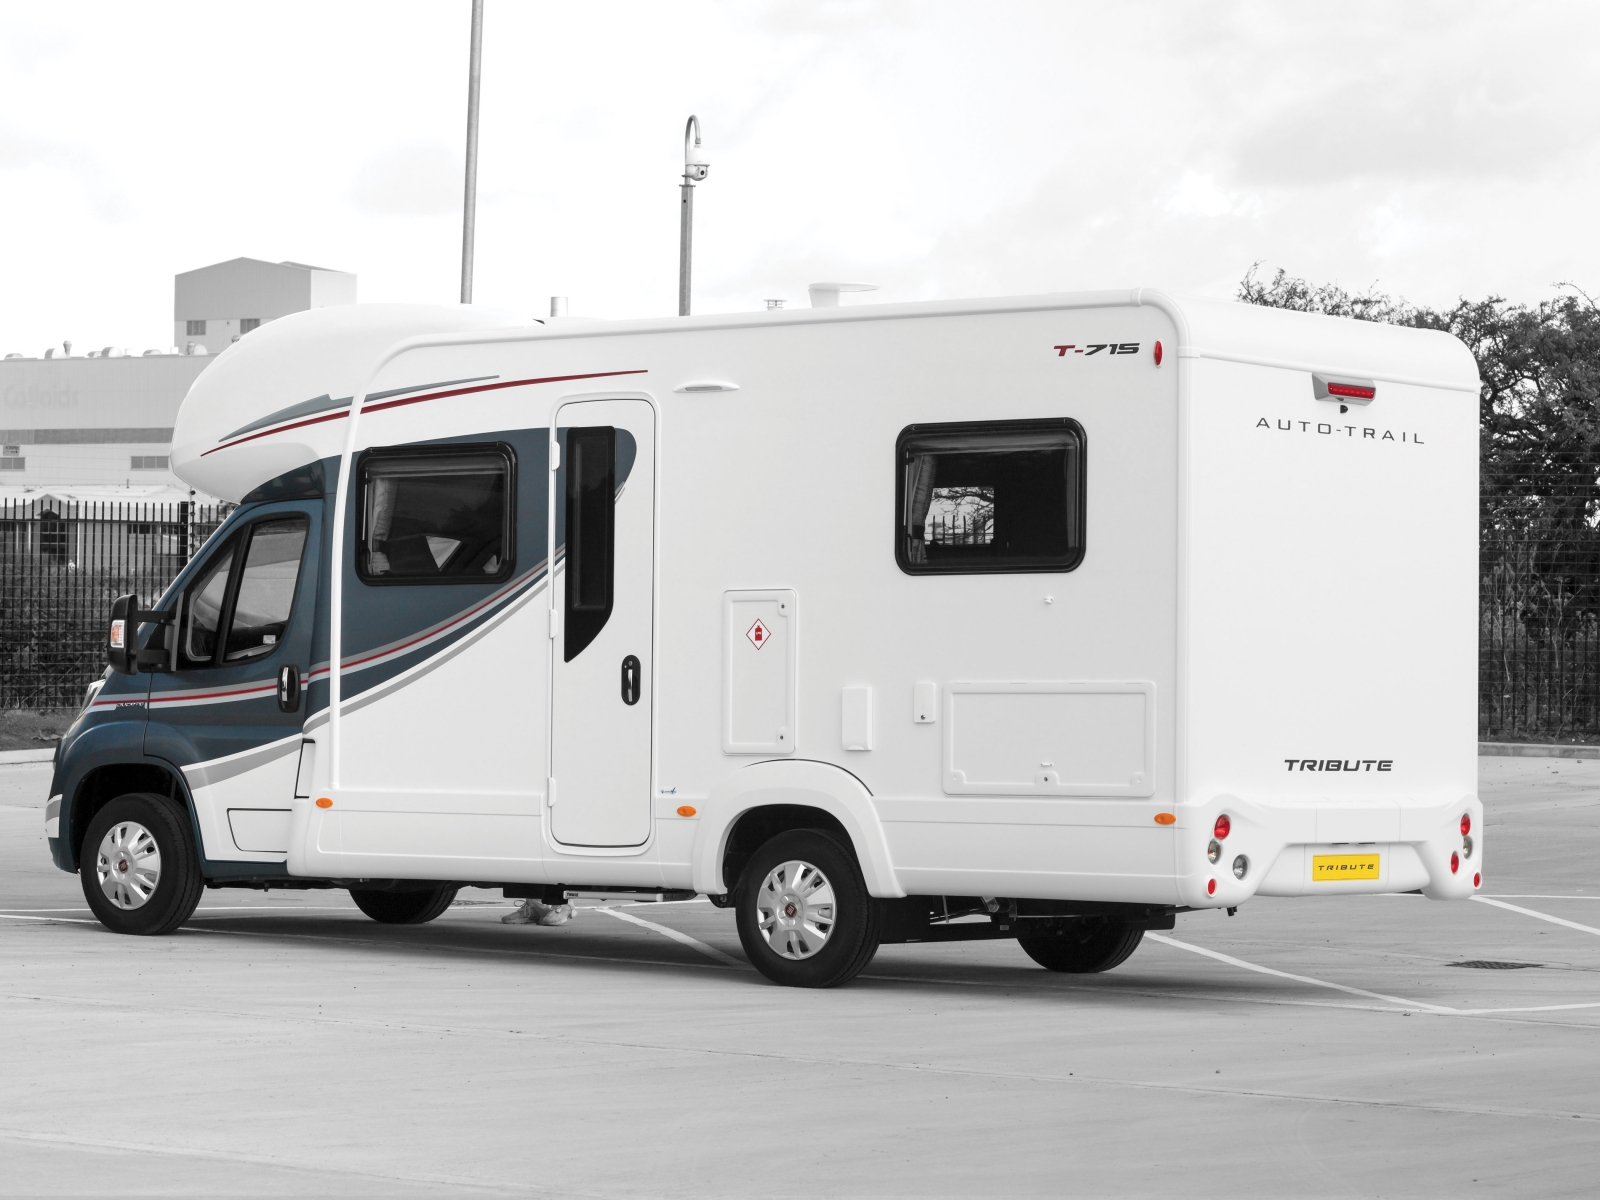 Auto-Trail Tribute T-715 image